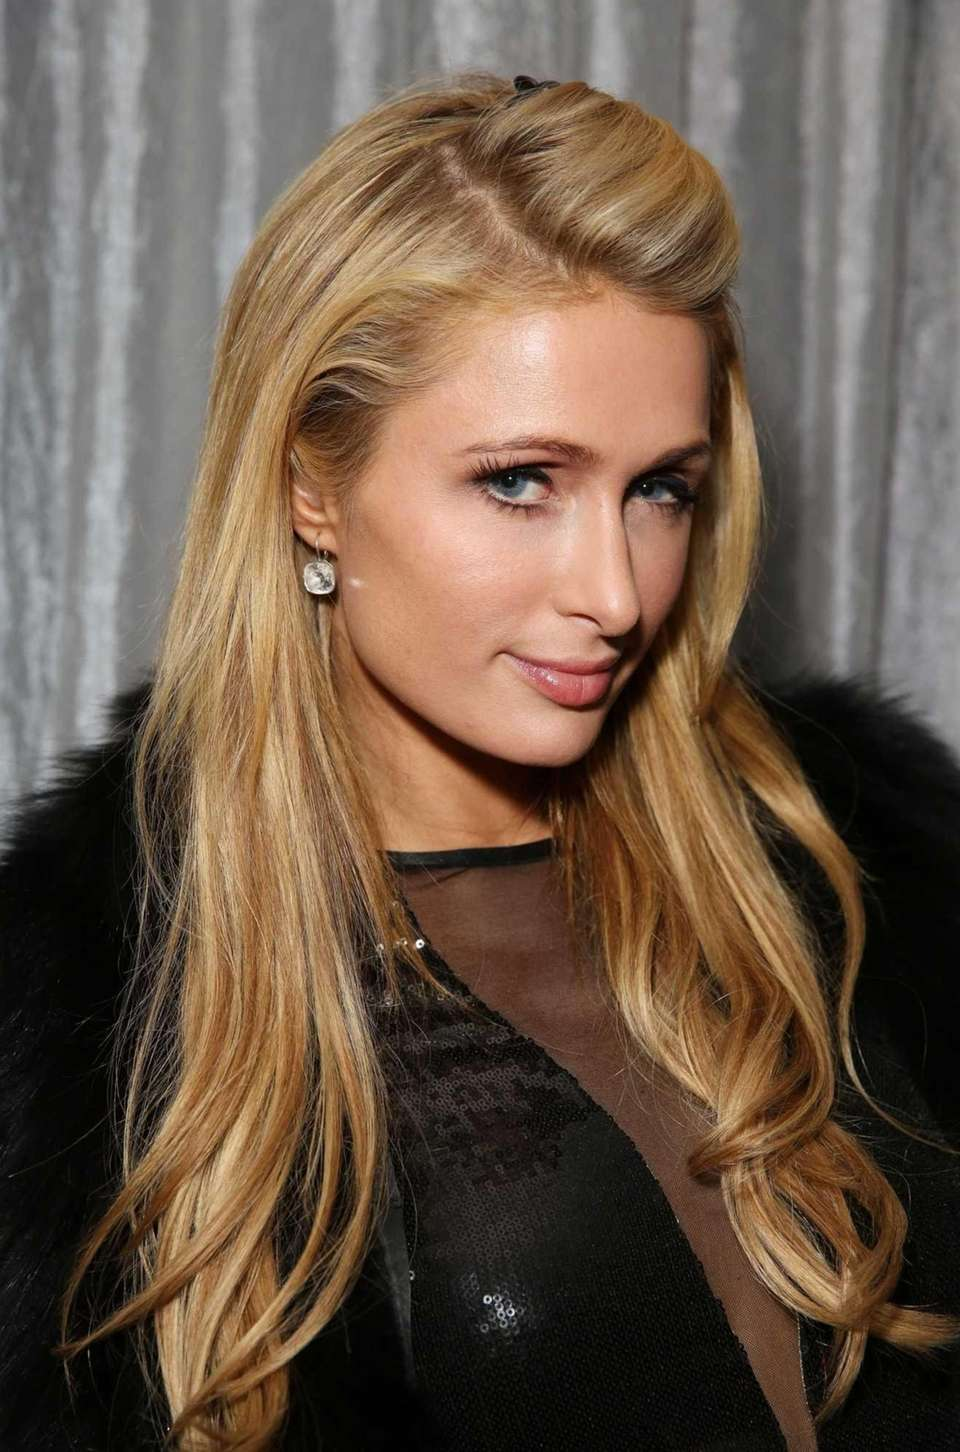 Paris Hilton attends CIROC presents Bootsy Bellows at